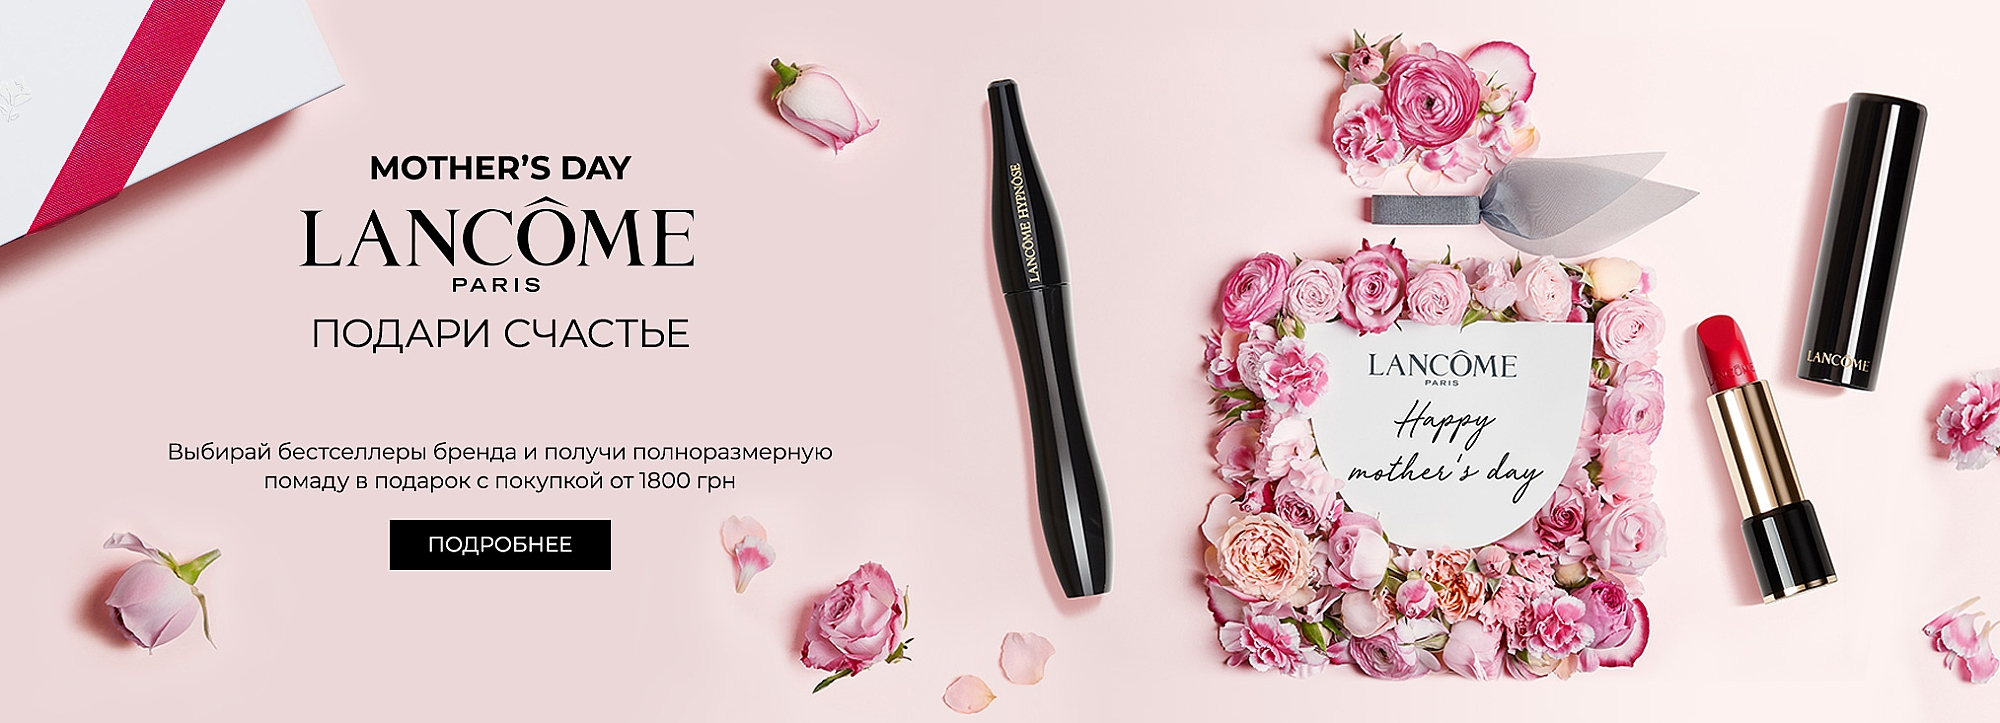 Lancome Mothers Day3